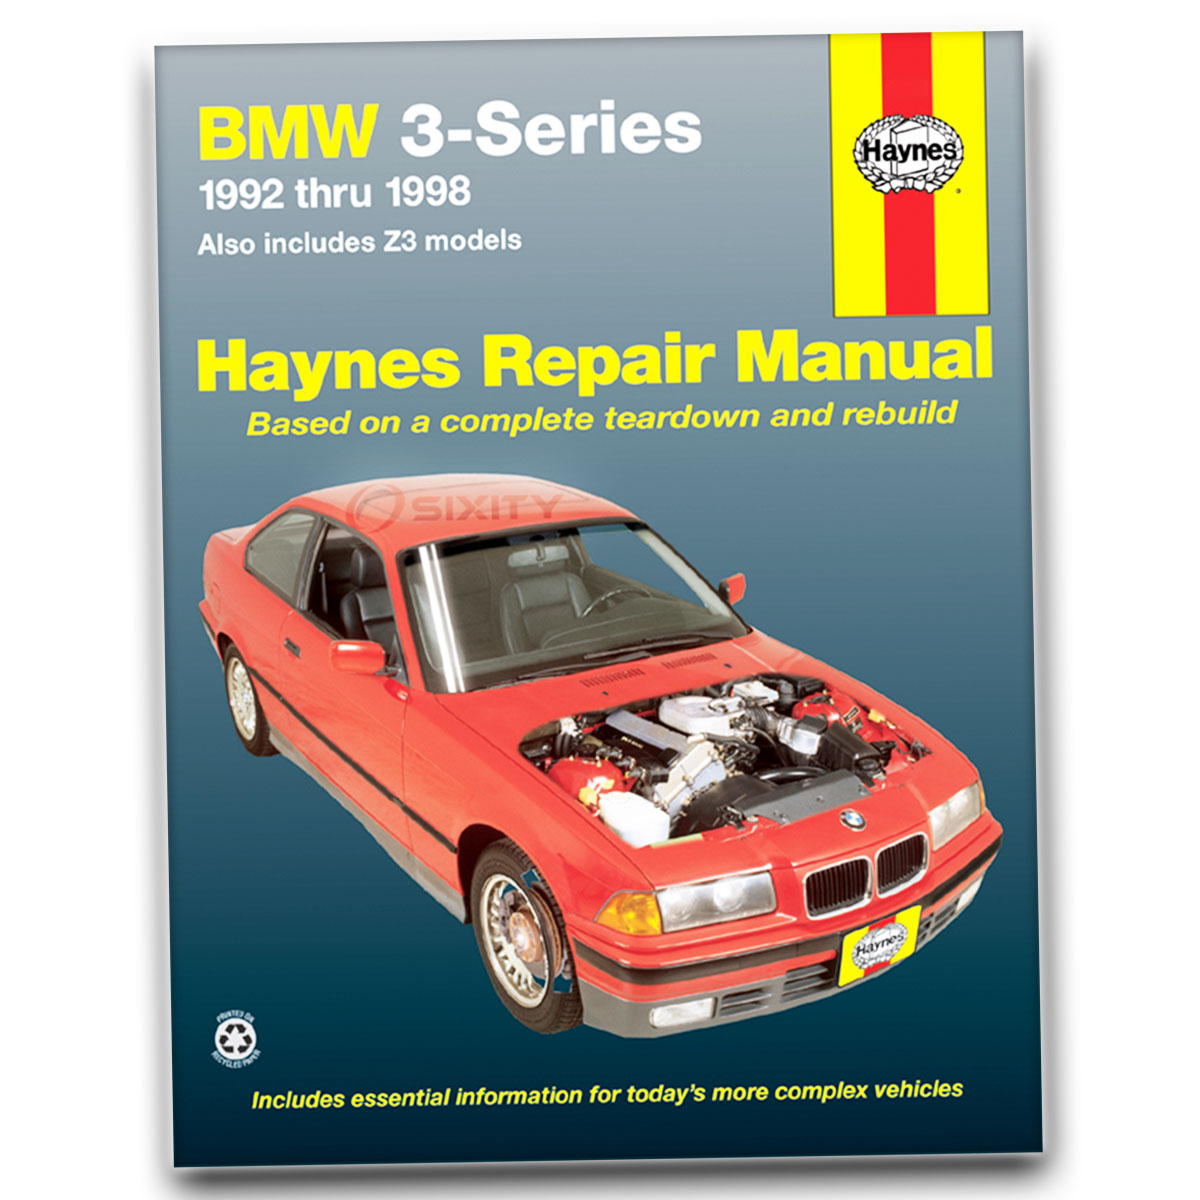 Haynes Repair Manual for BMW Z3 M Roadster Shop Service Garage Book oy